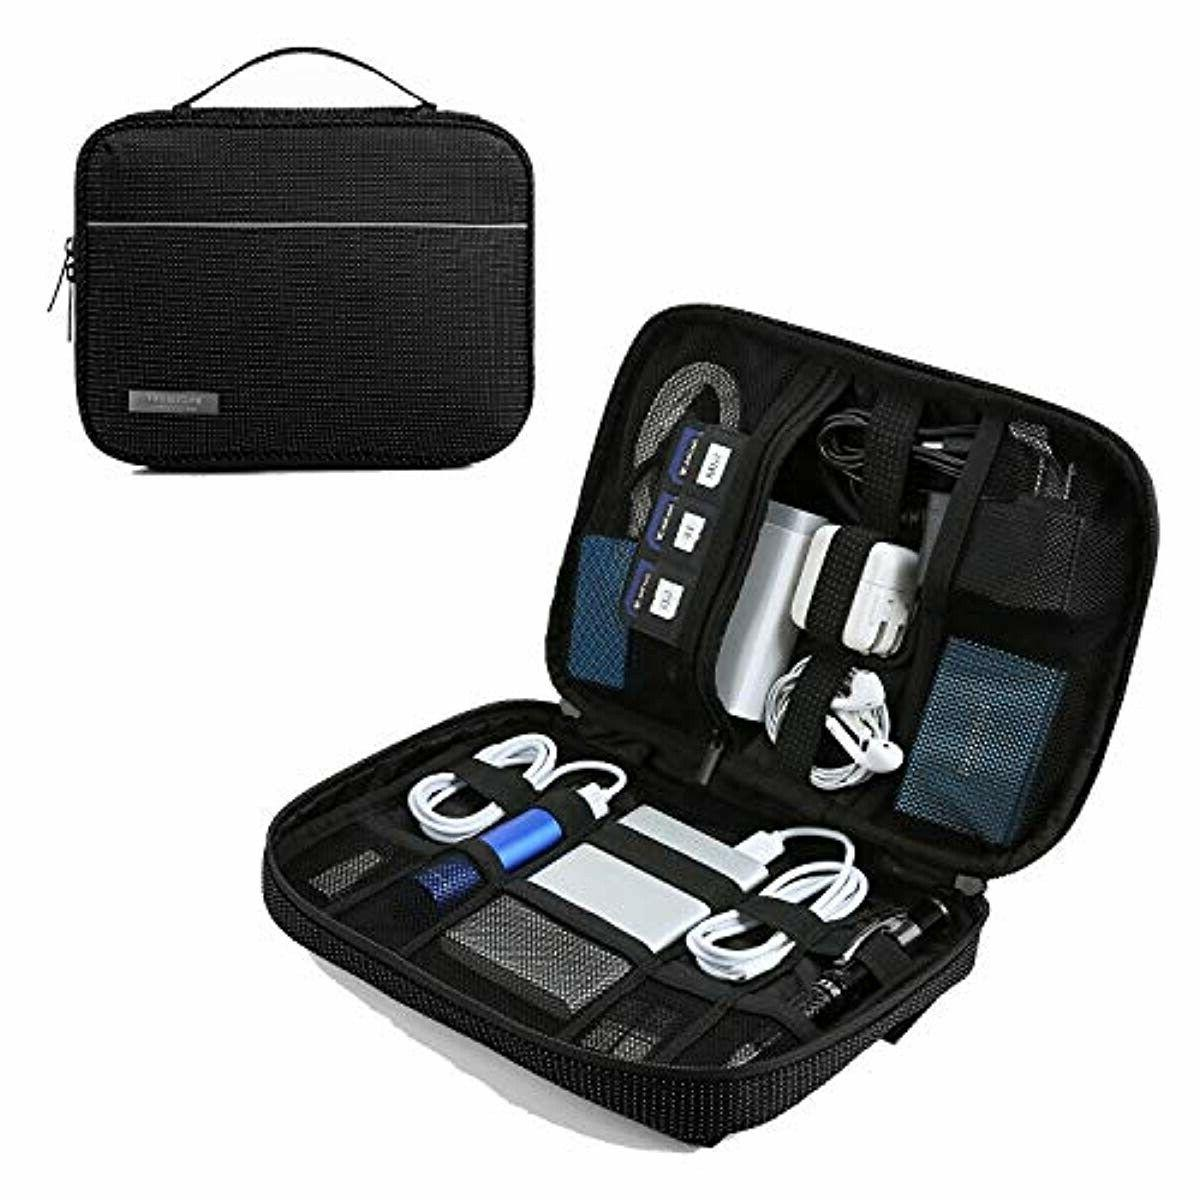 travel electronic organizer cases electronics accessories st